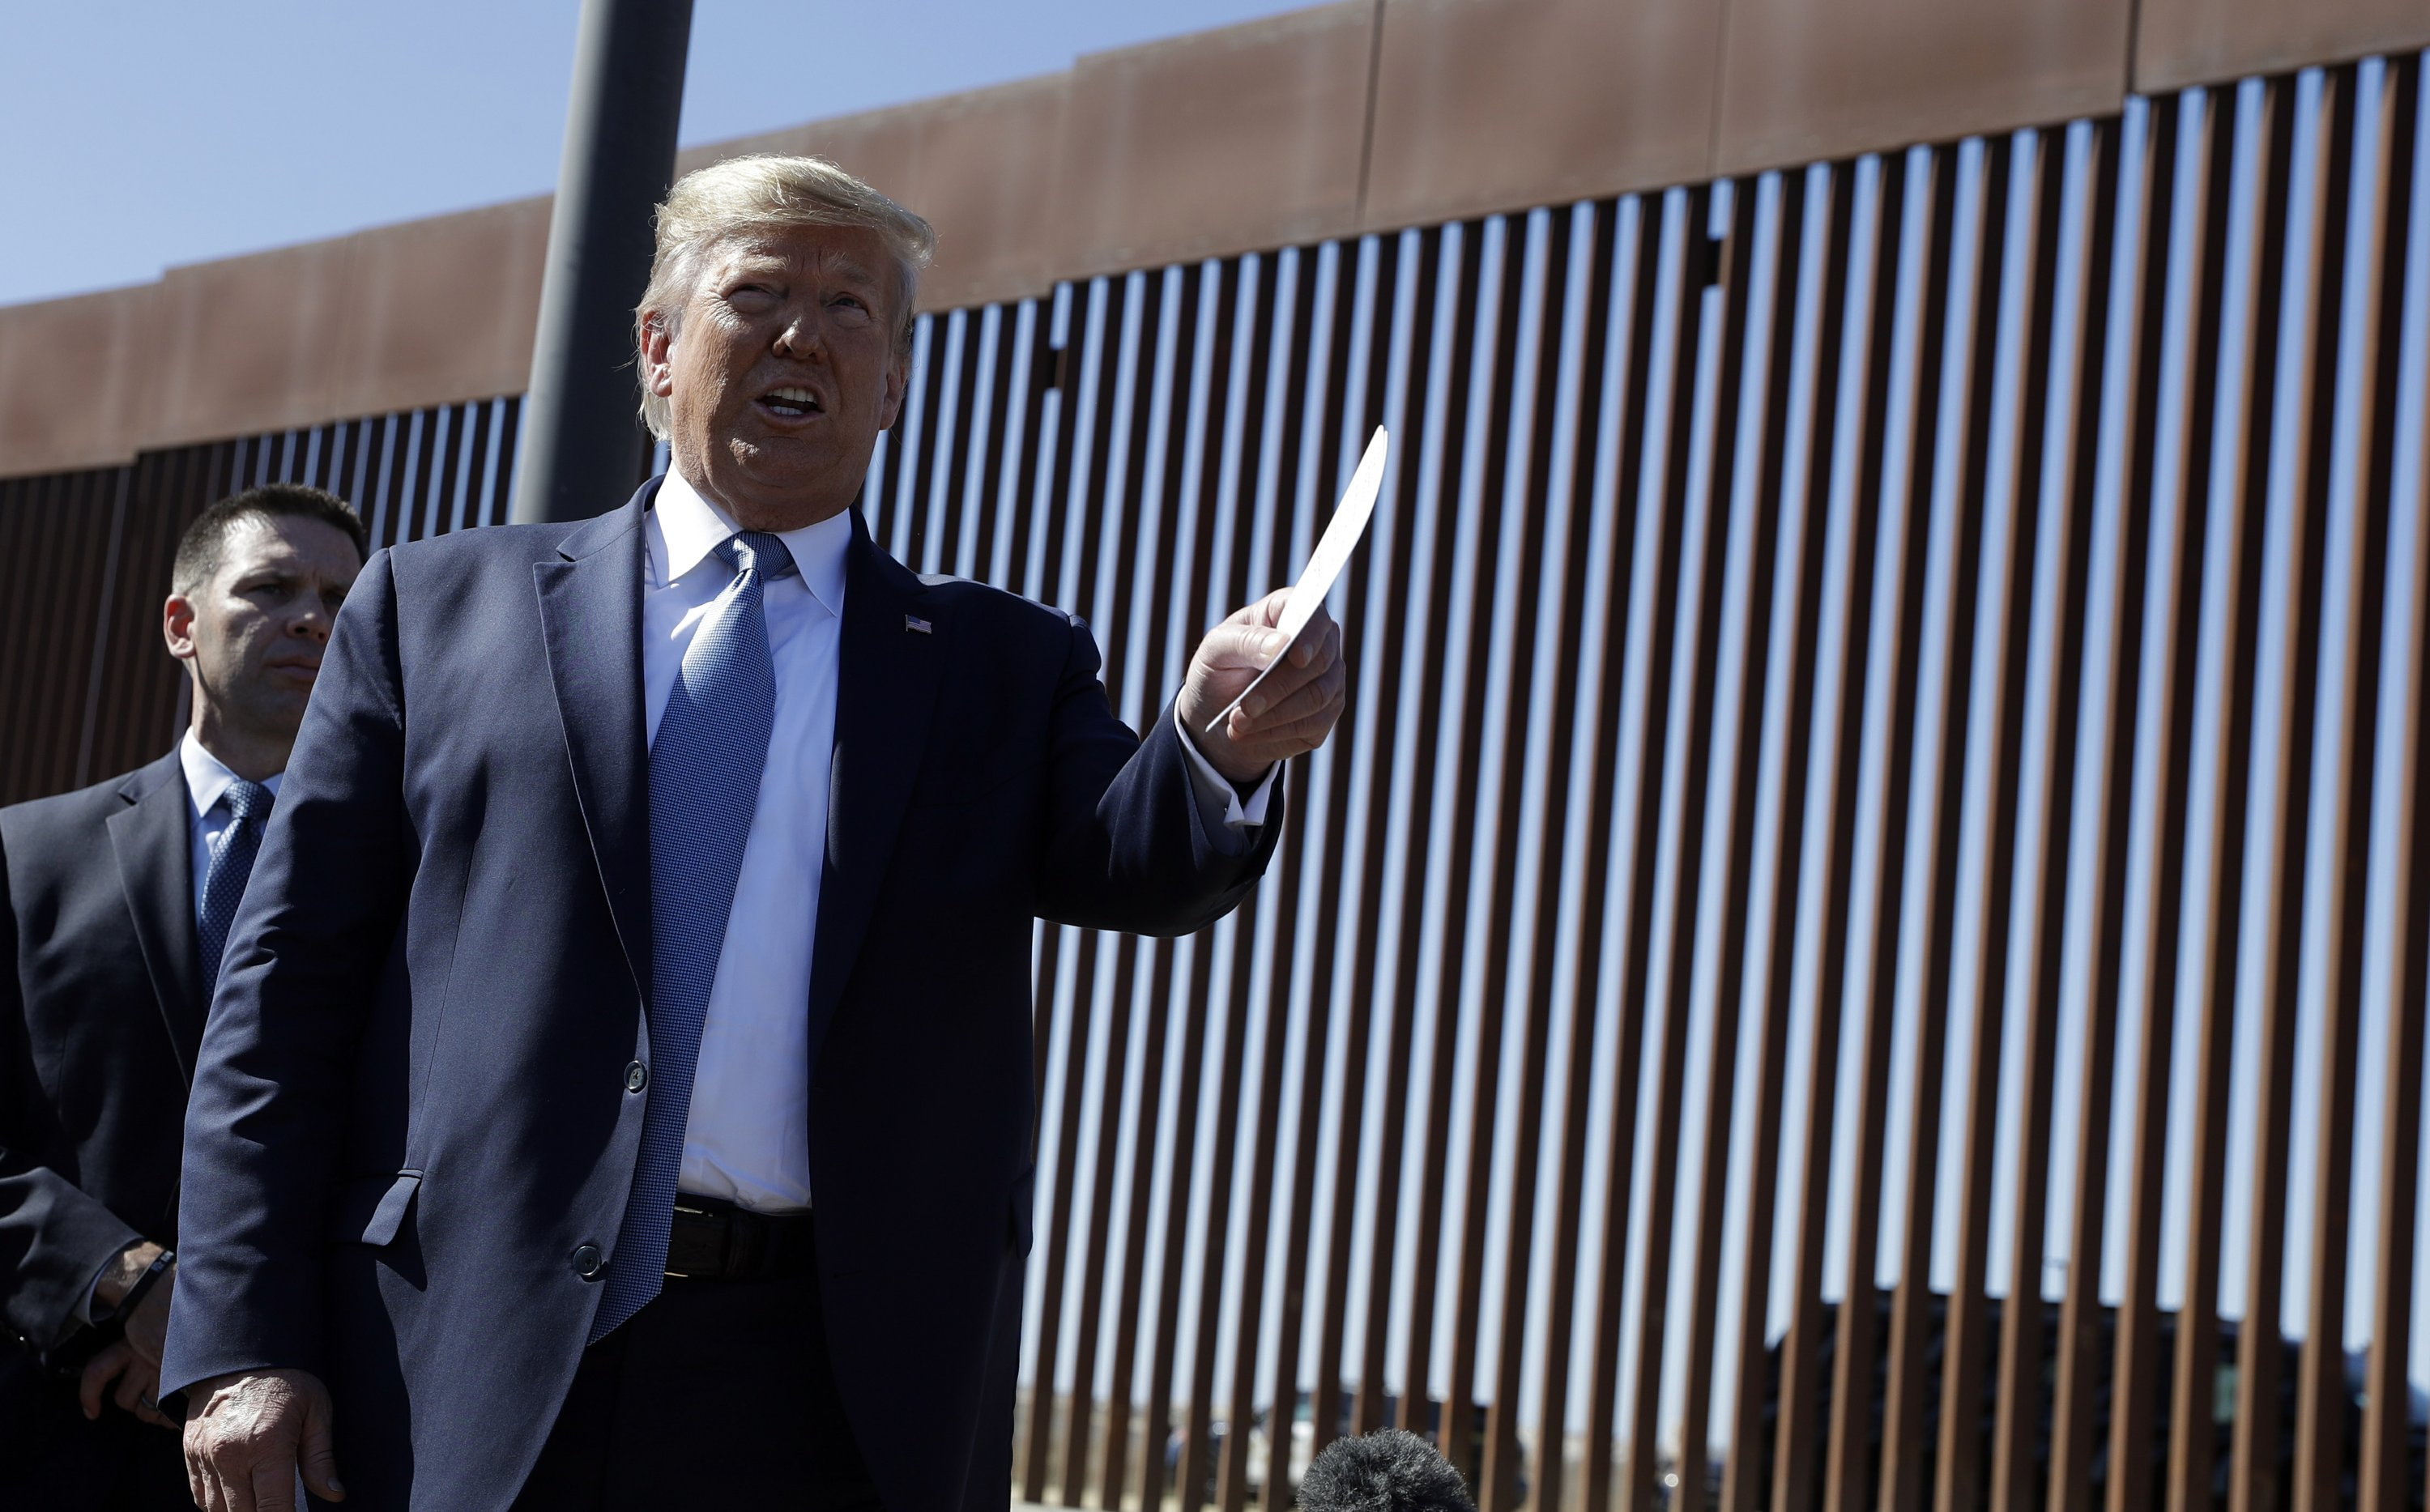 Trump calls new border wall a 'world-class security system'